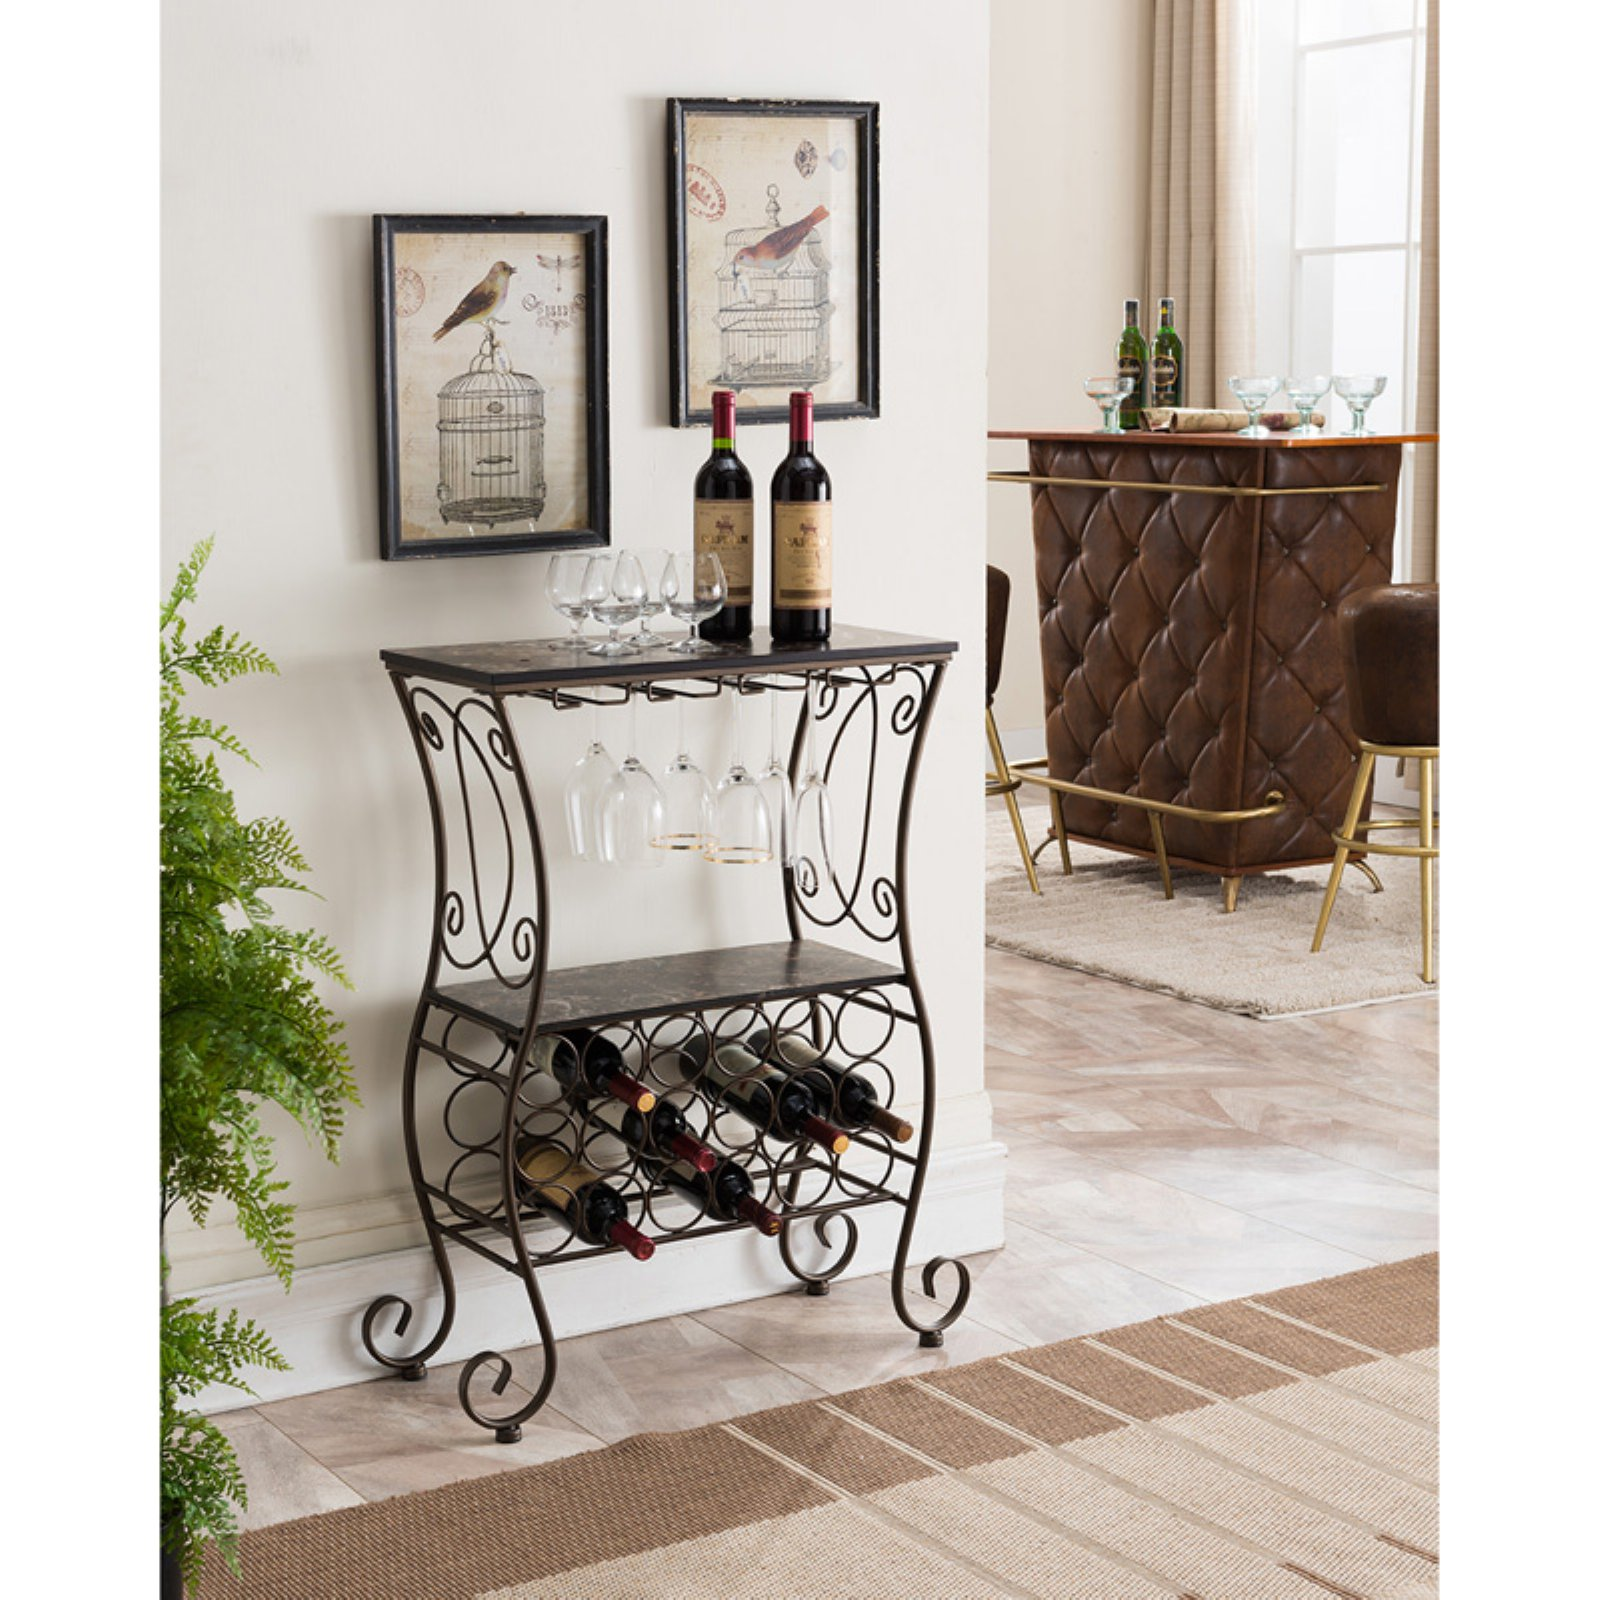 K&B Furniture WR1363 Marble Metal 18 Bottle Wine Rack by K and B Furniture Co Inc